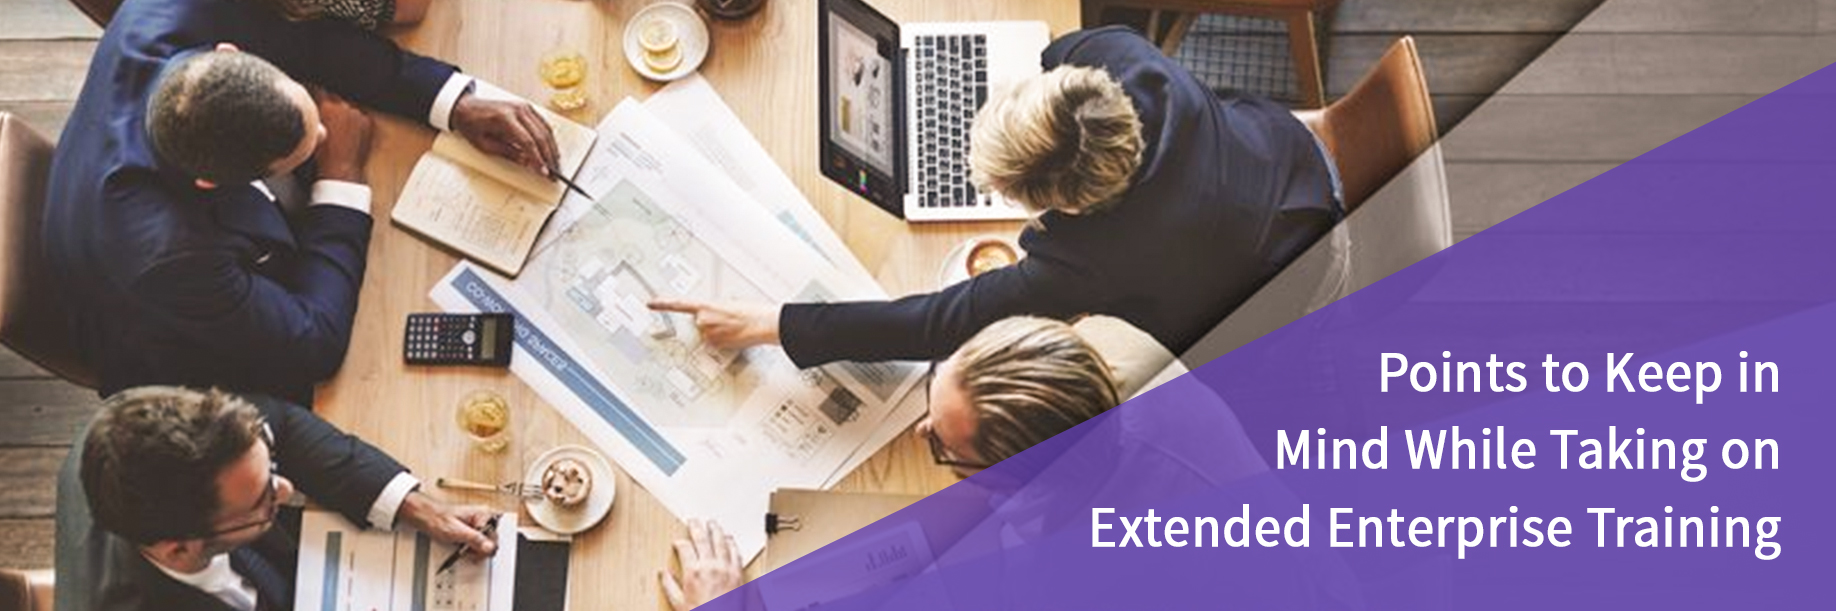 Points to Keep in Mind While Taking on Extended Enterprise Training